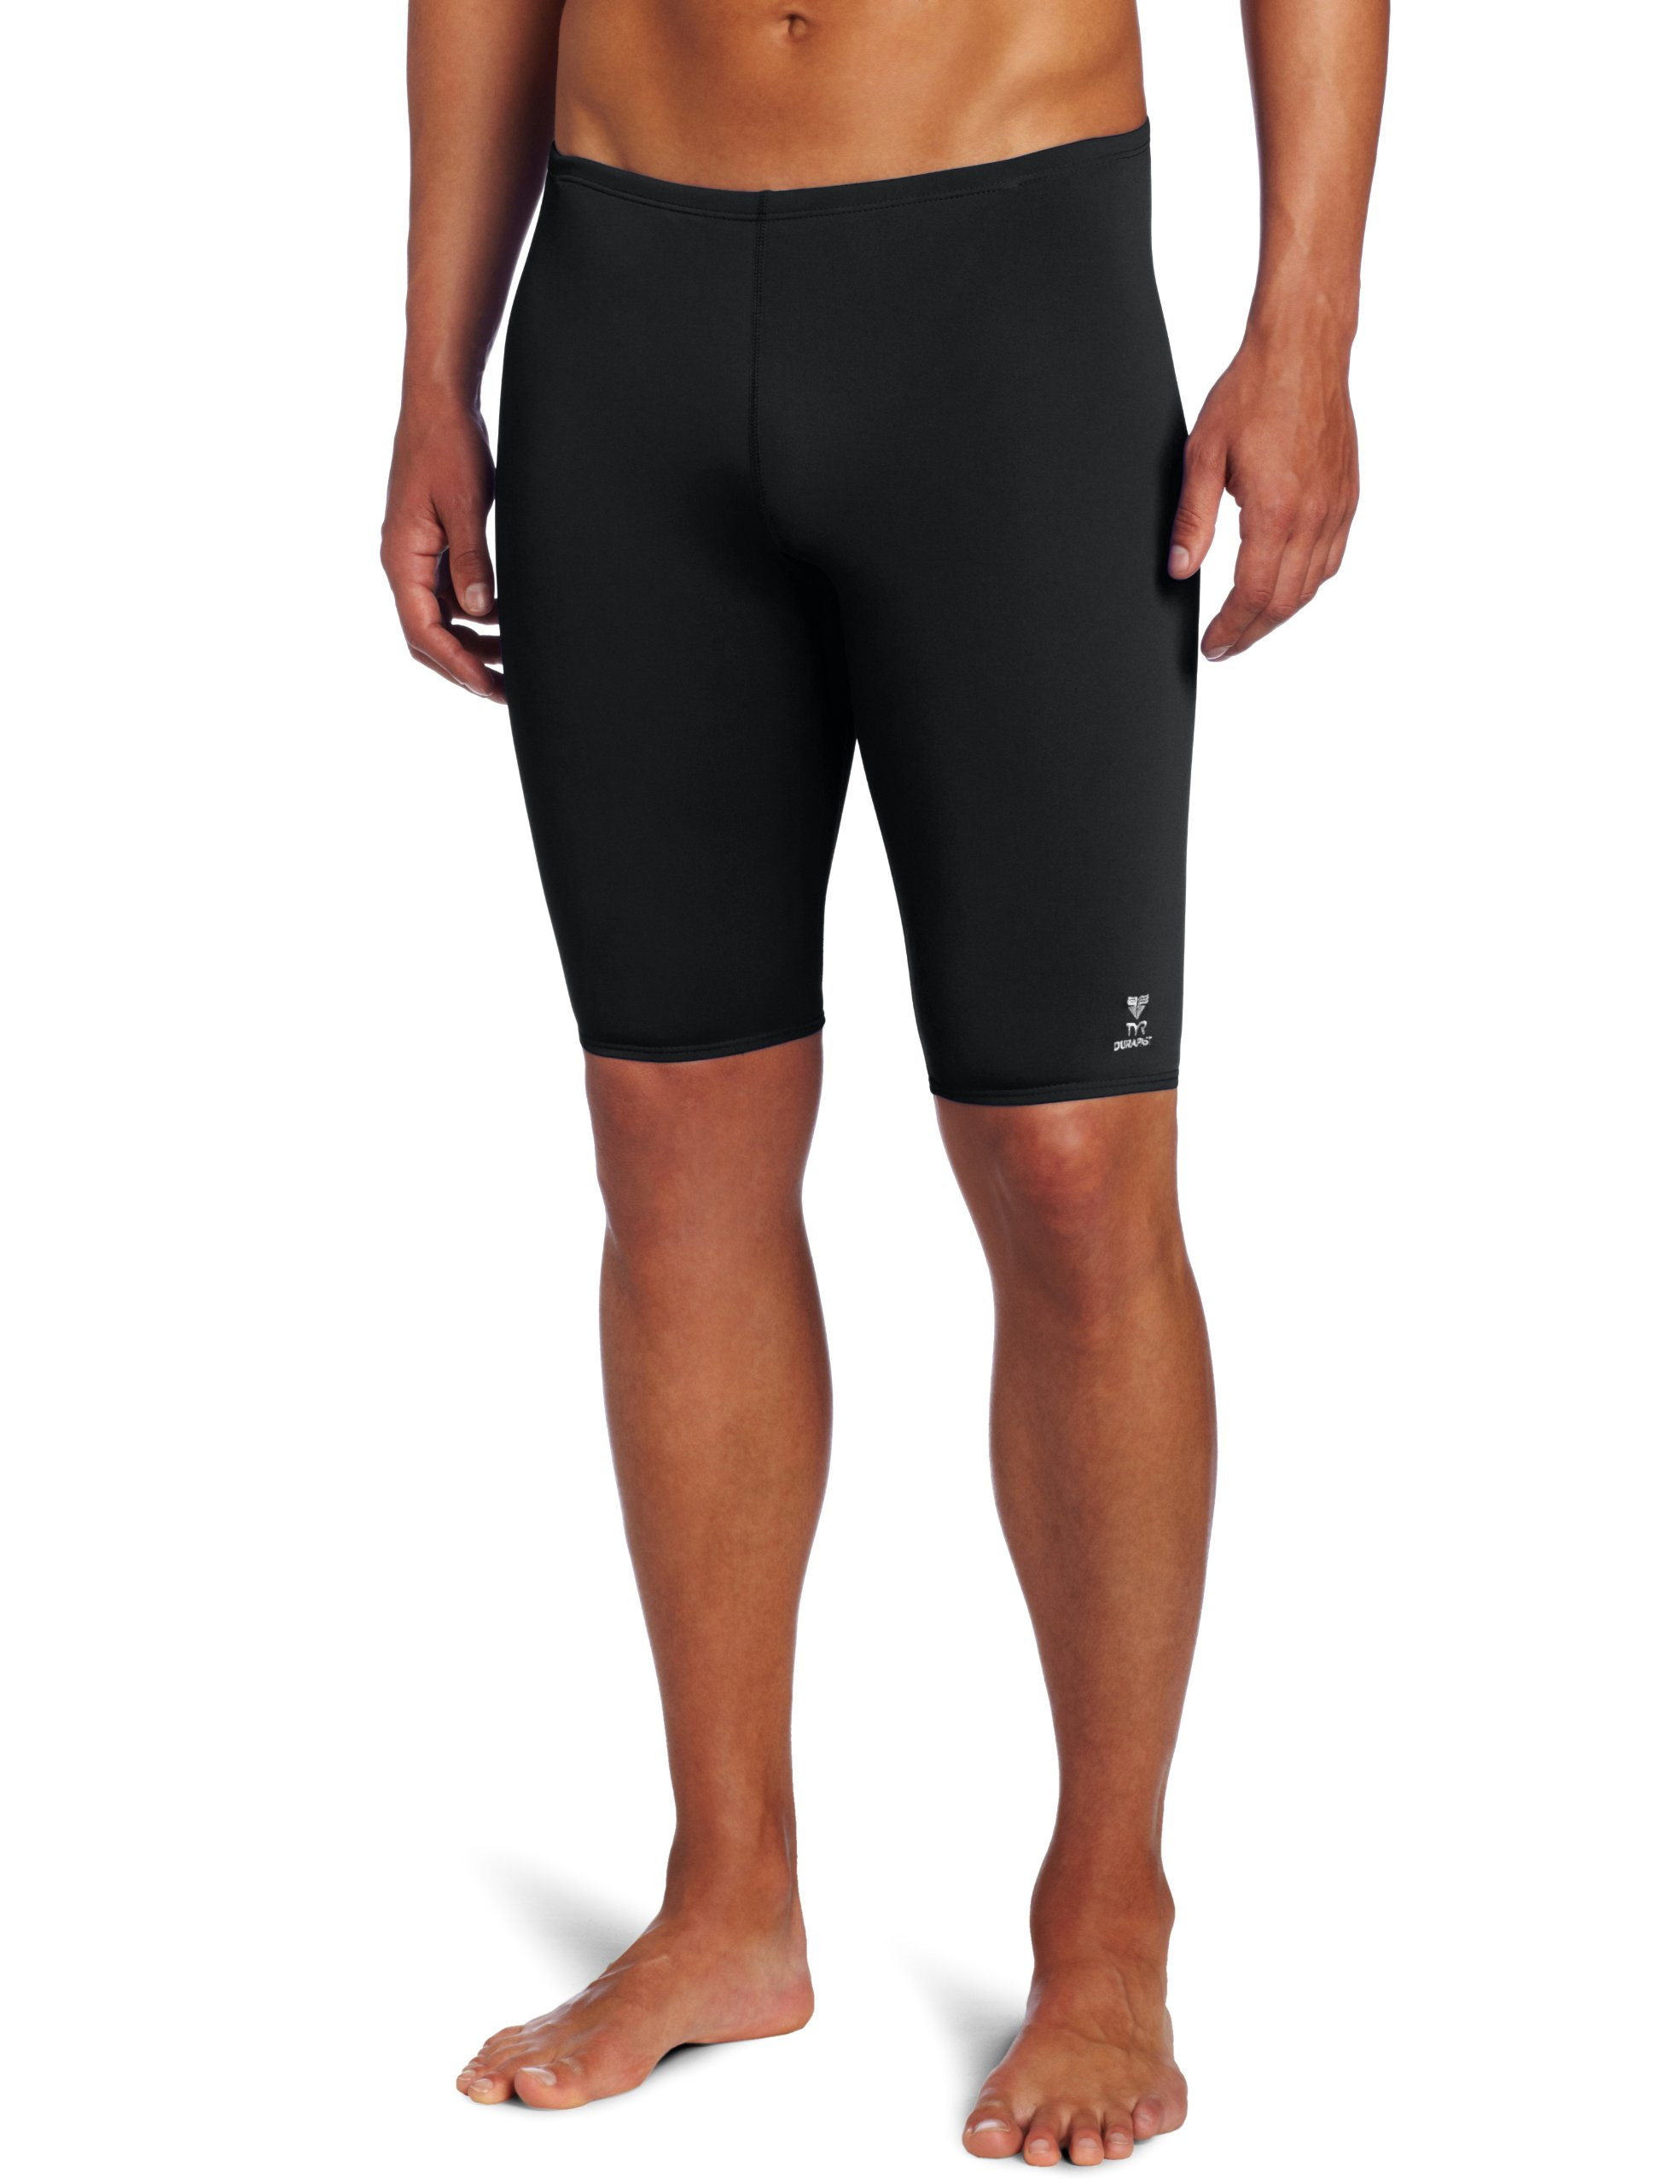 TYR SDUR7A132 Durafast One Solid Jammer Black 32 by TYR